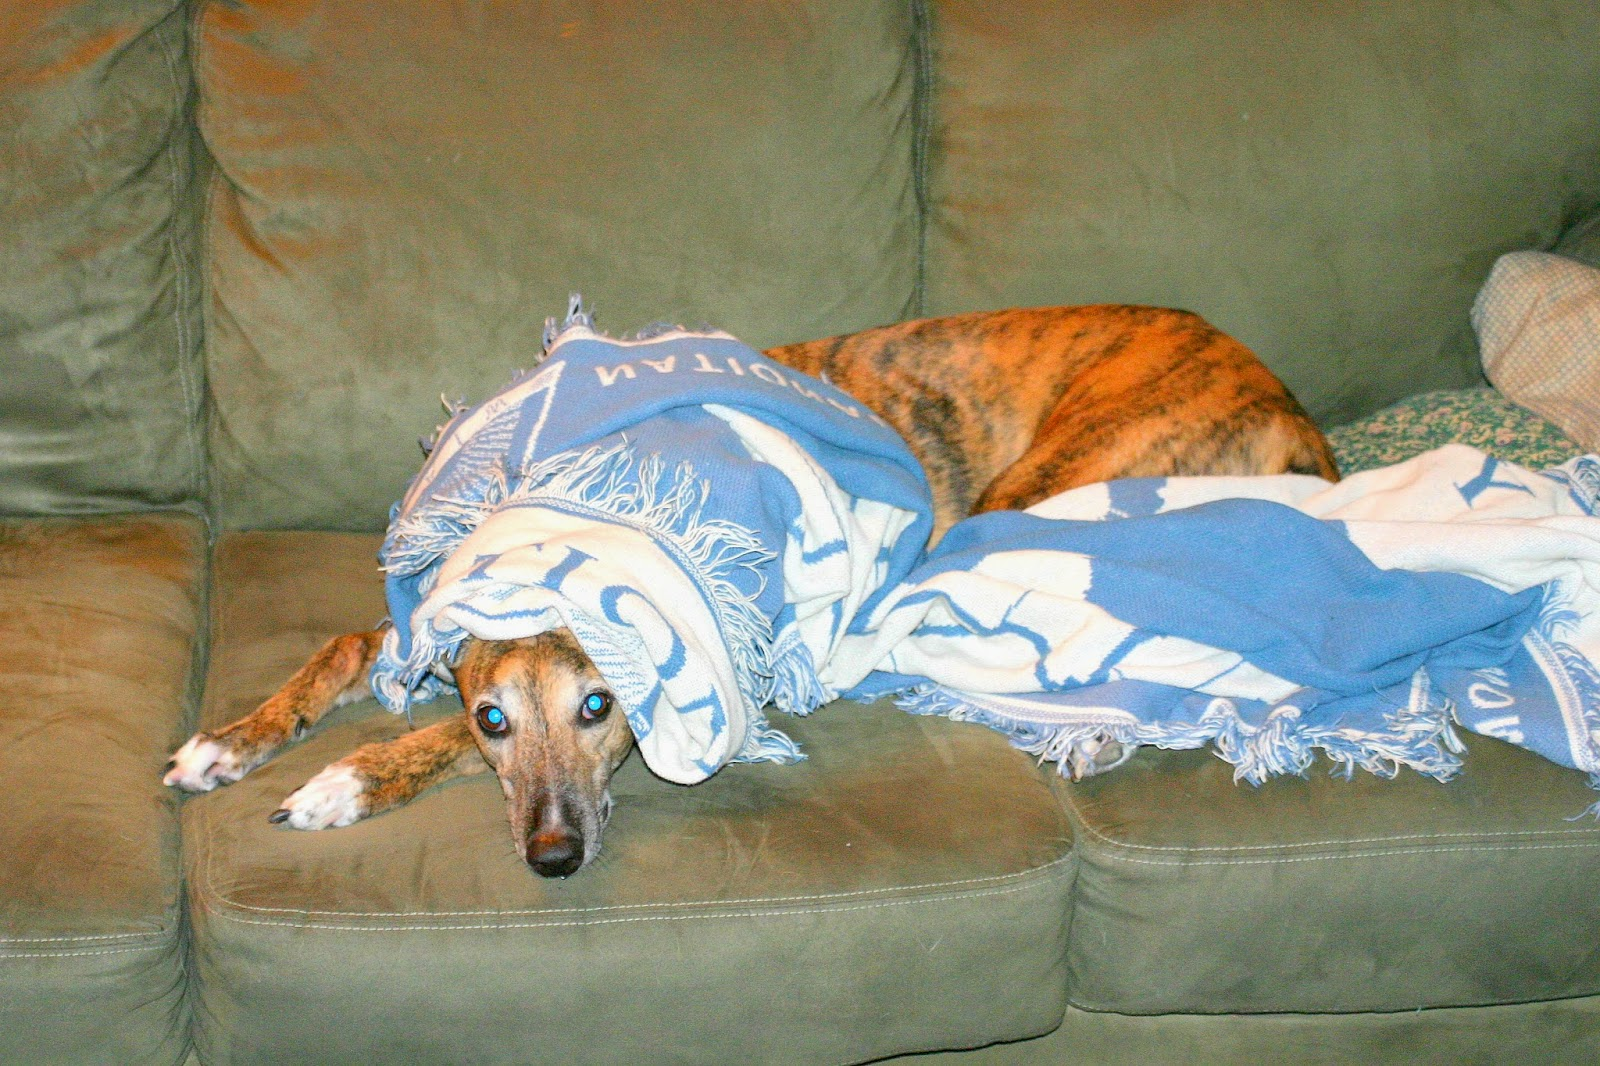 Girly Girl Greyhound under cover